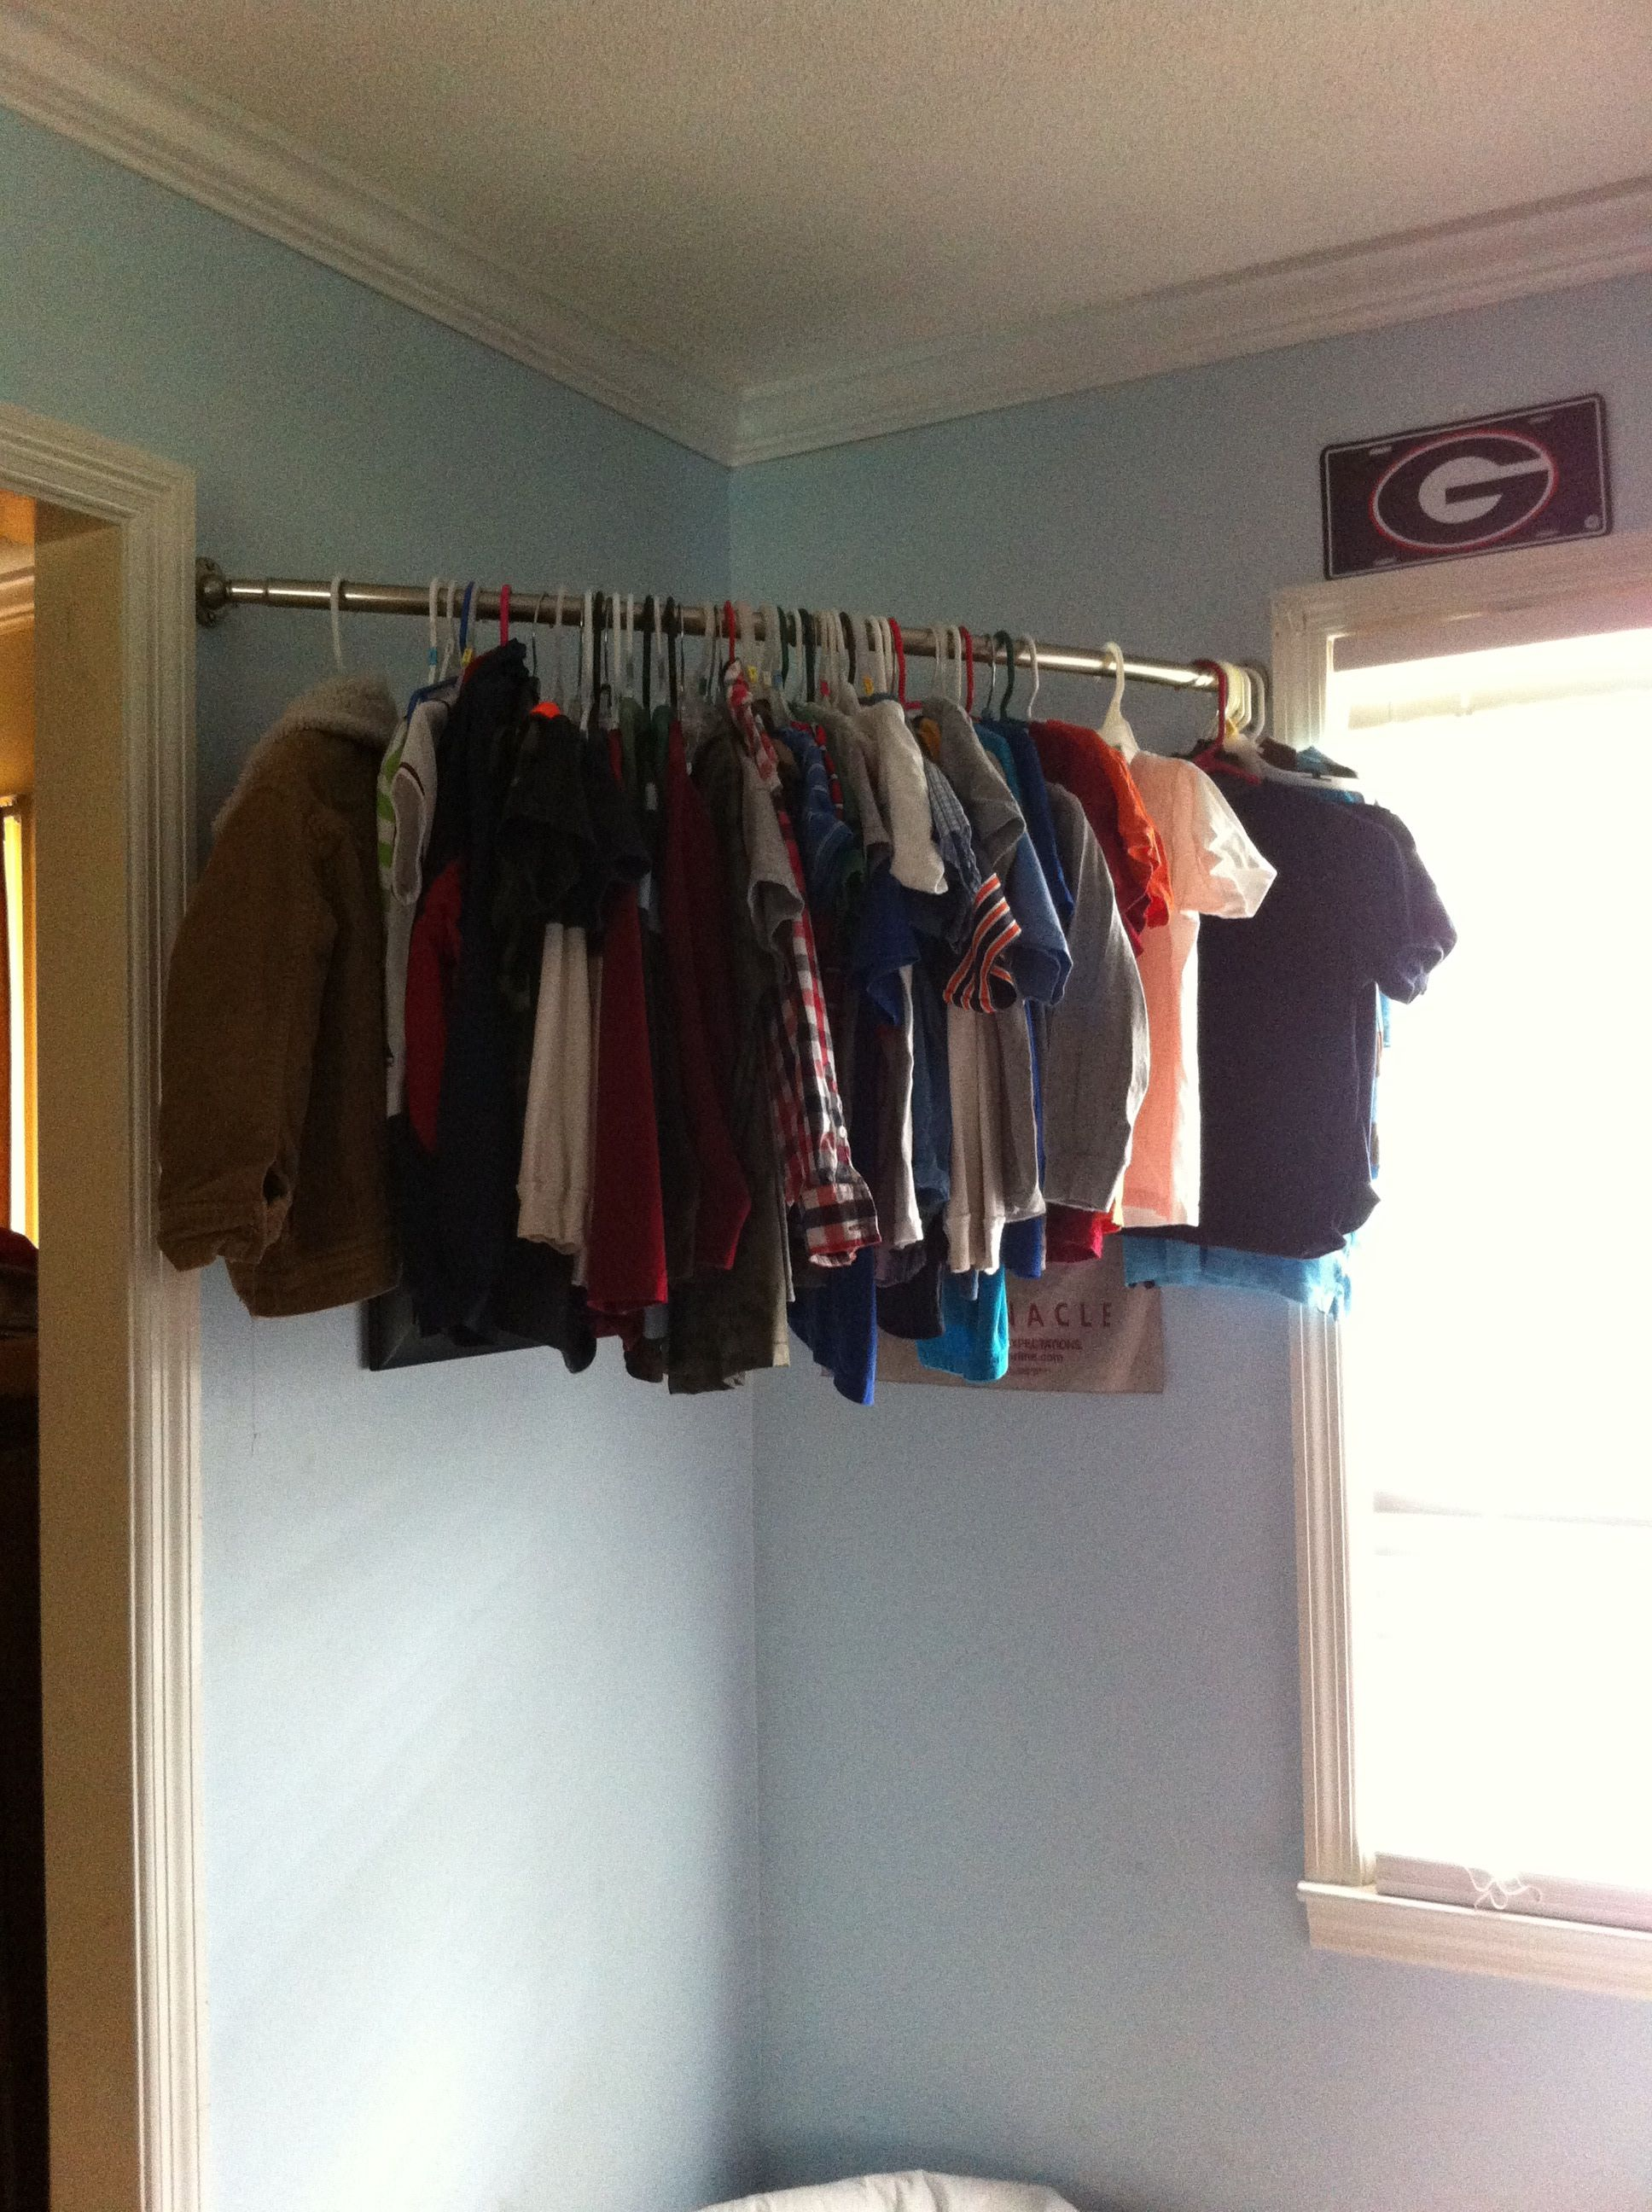 No Closet I Used A Curved Shower Rod For My Son S Clothes